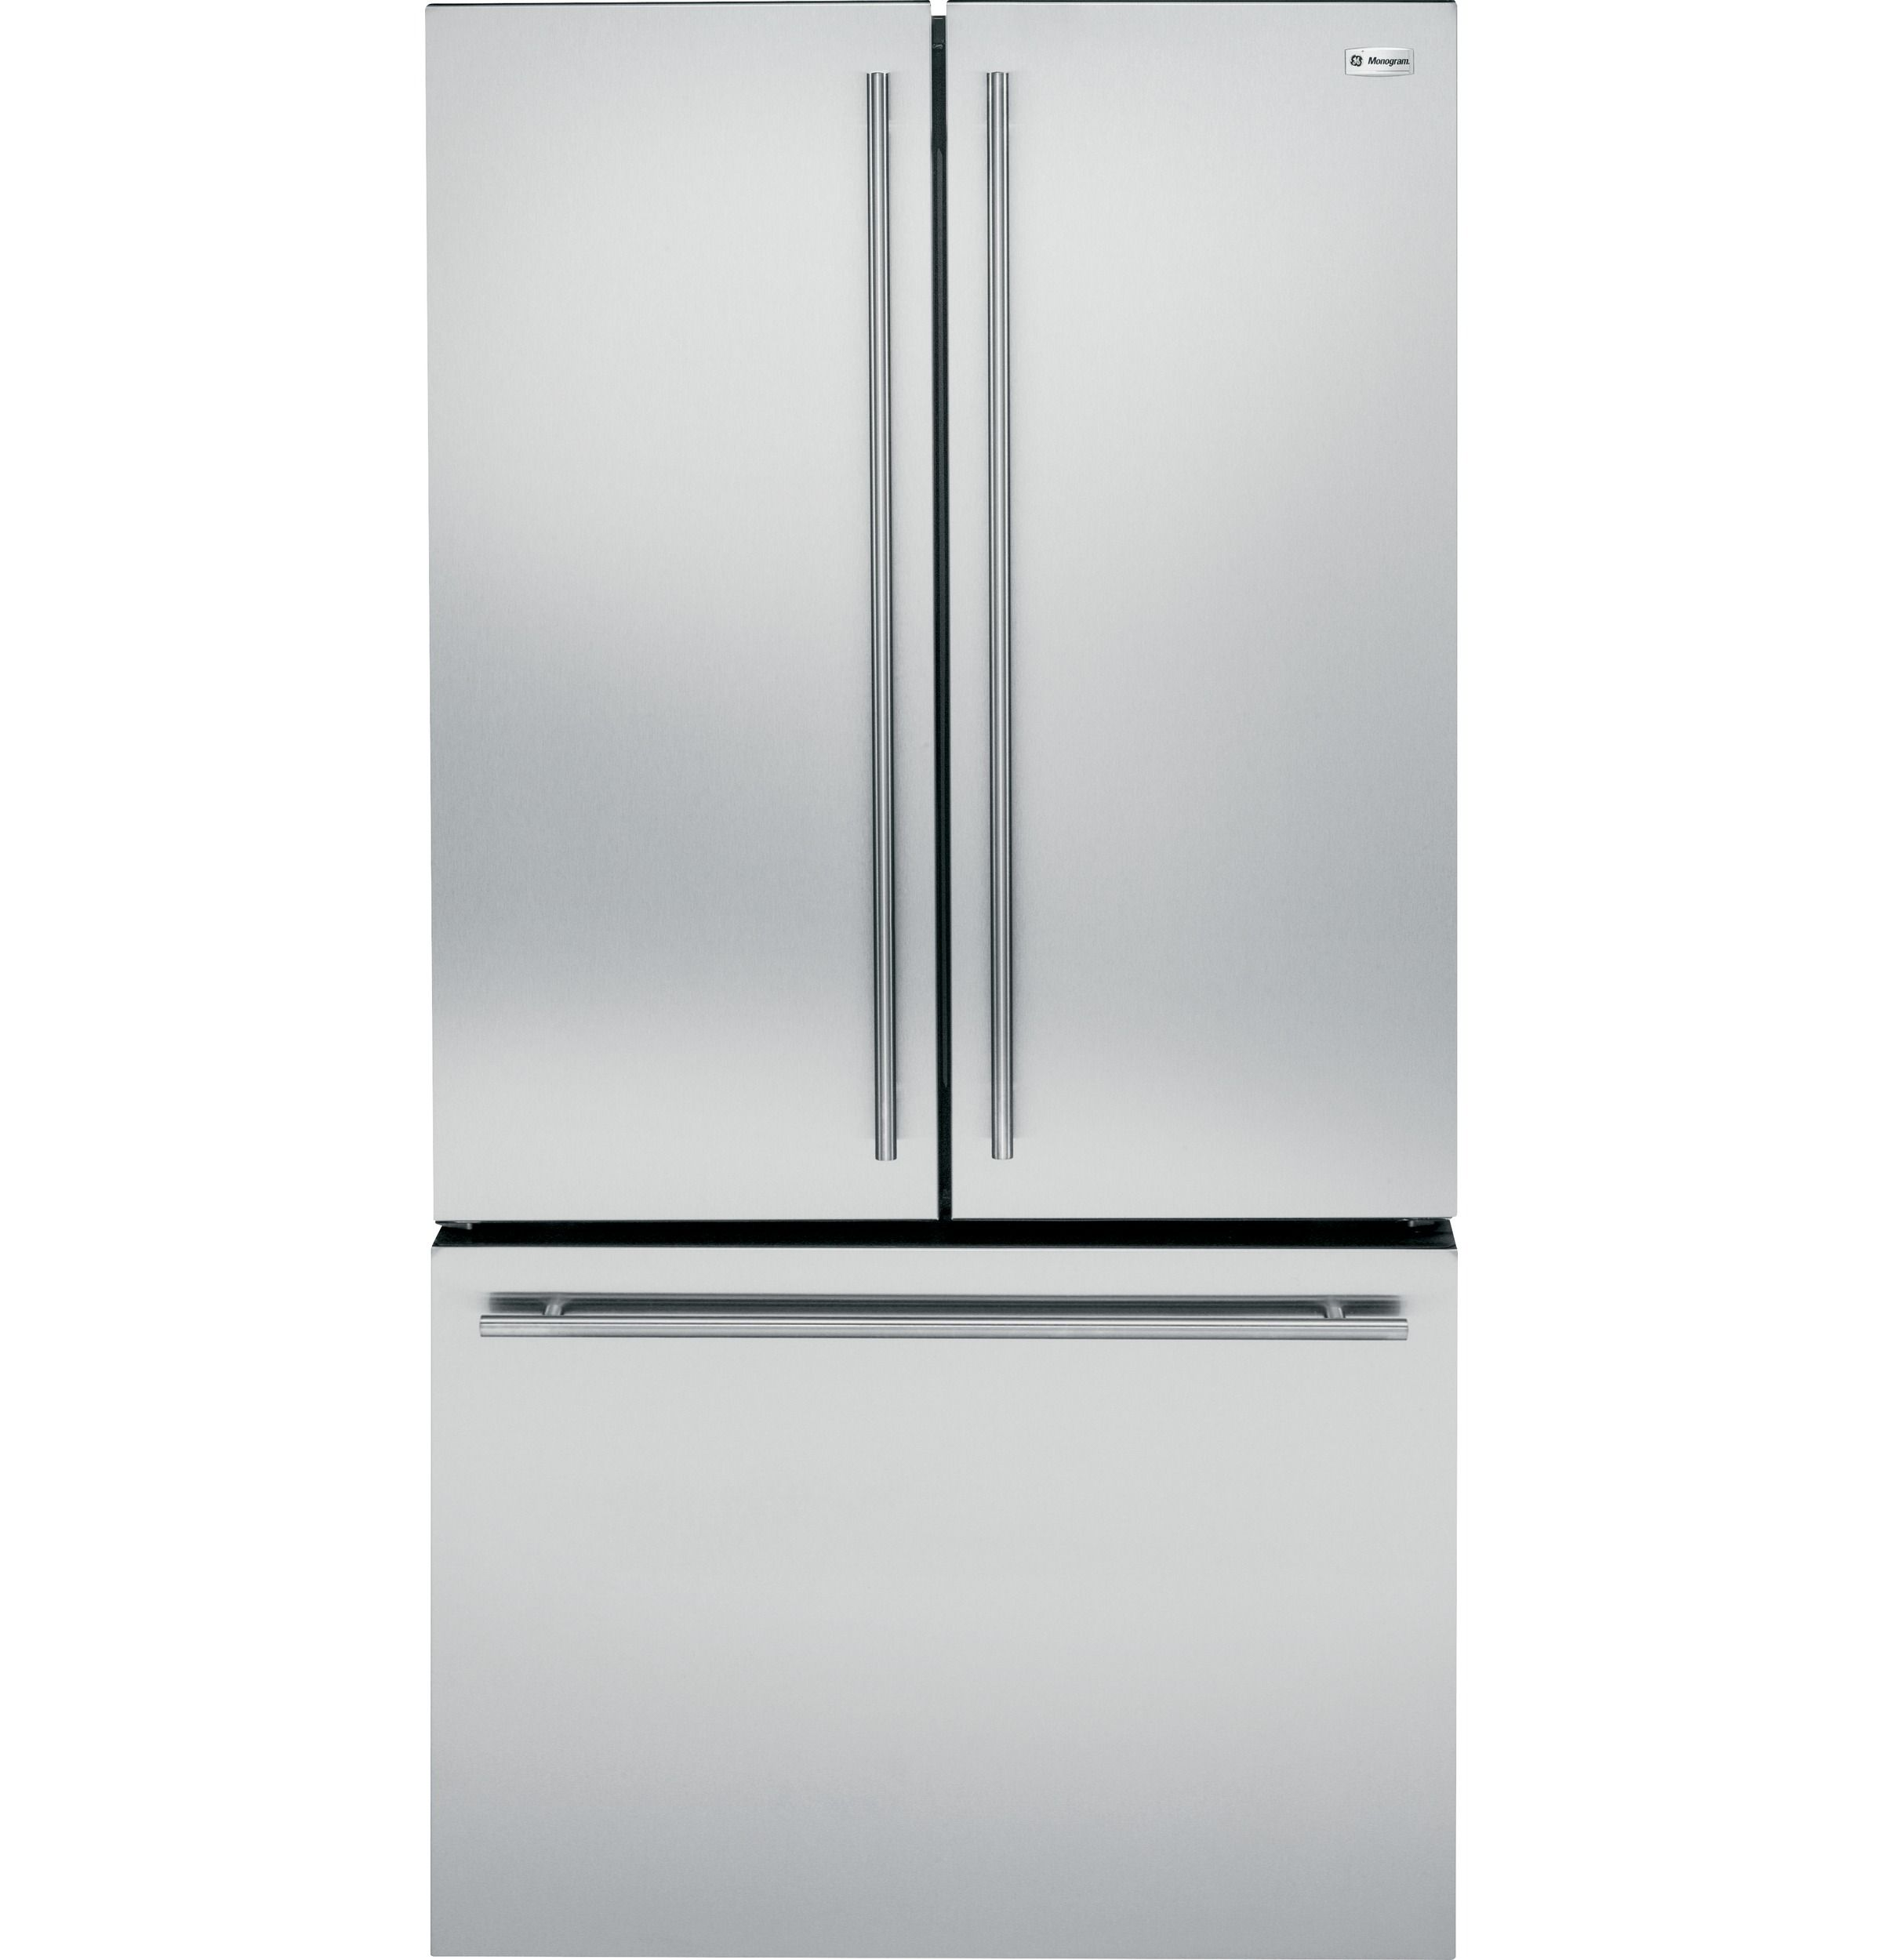 zwe23eshss - ge monogram u00ae energy star u00ae 23 1 cu  ft  counter-depth french-door refrigerator